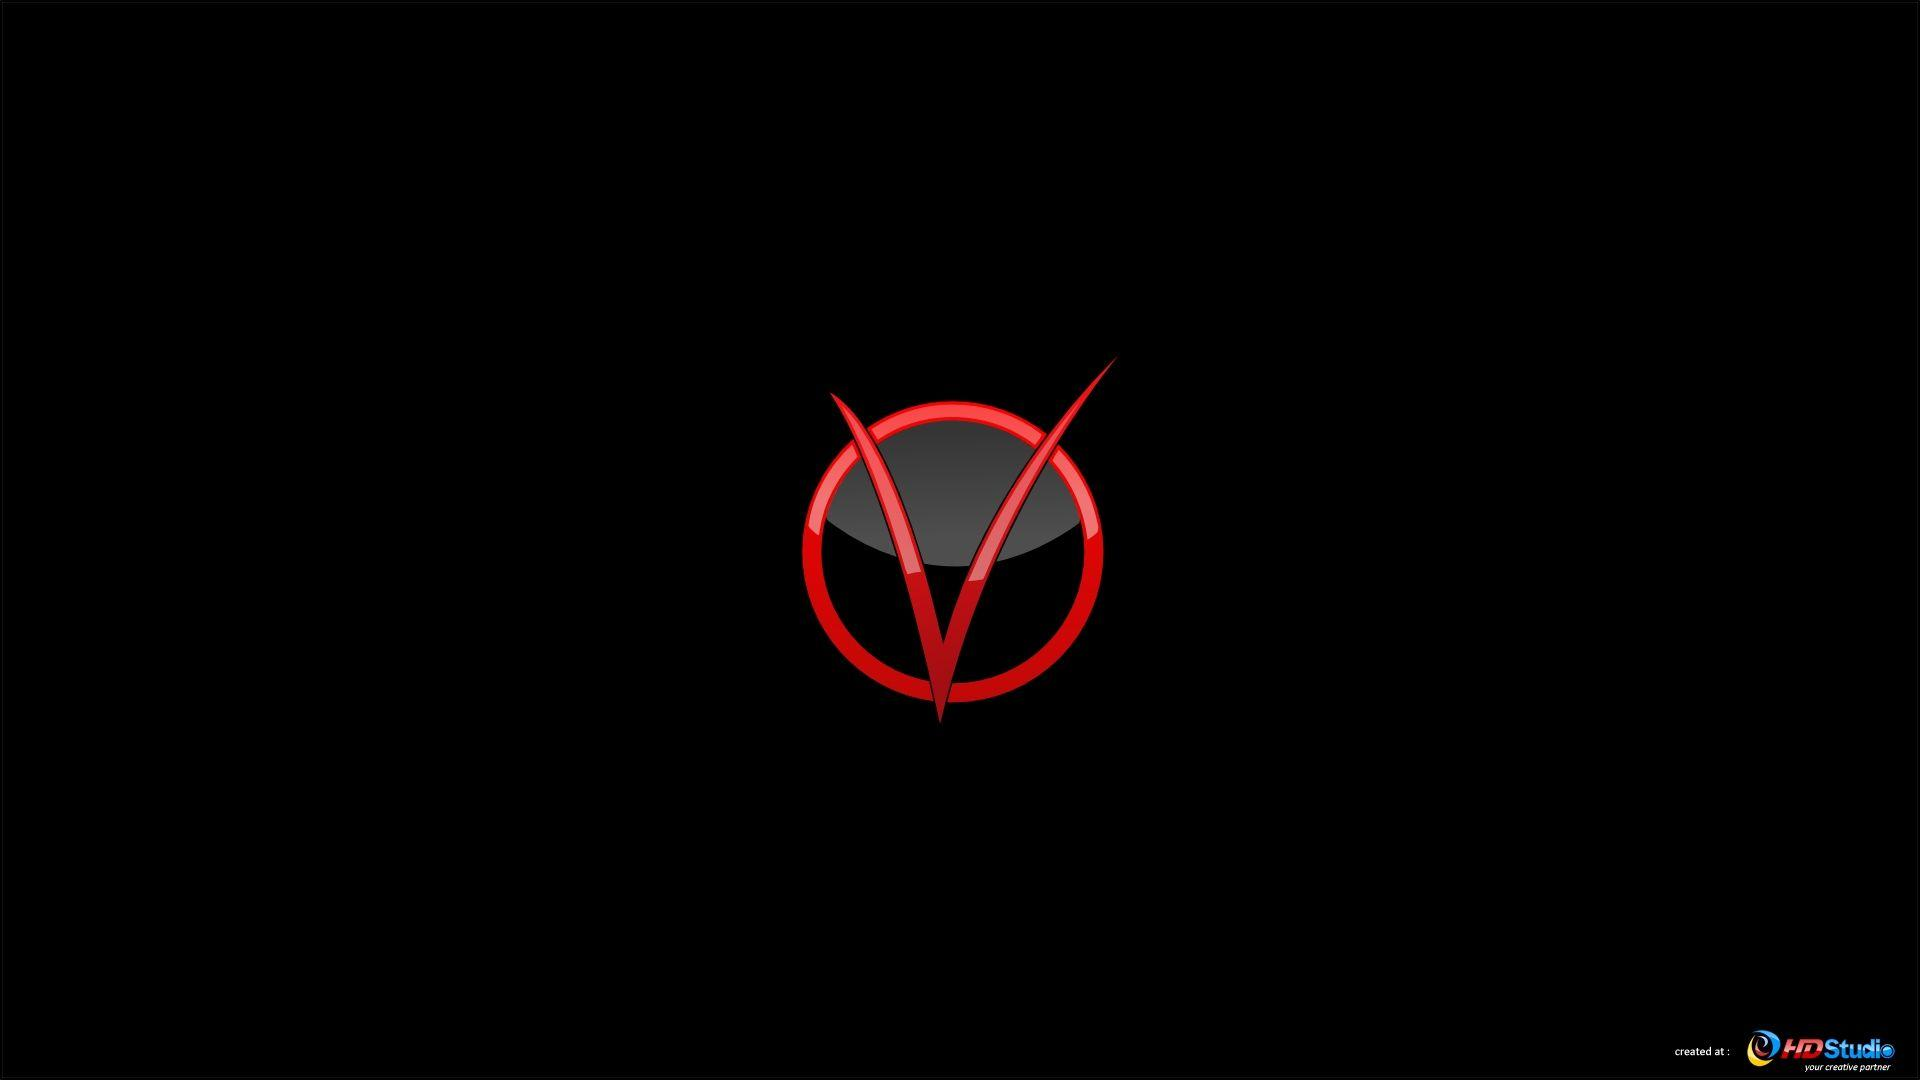 V for vendetta wallpapers hd wallpaper cave - V wallpaper hd ...